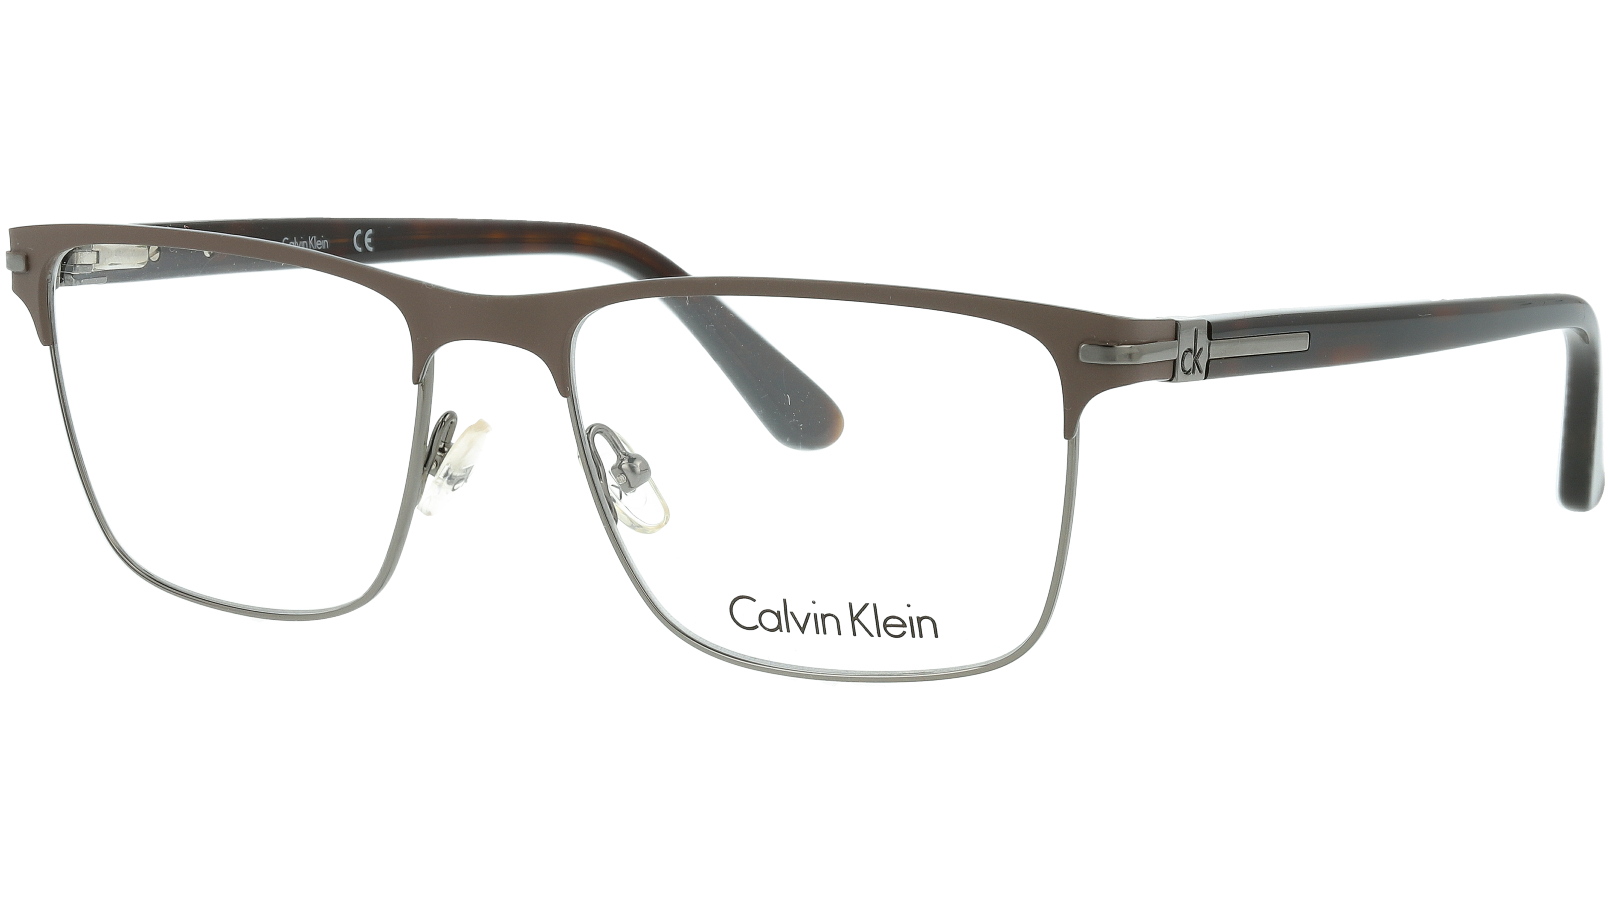 CALVIN KLEIN CK5427 201 53 BROWN Glasses